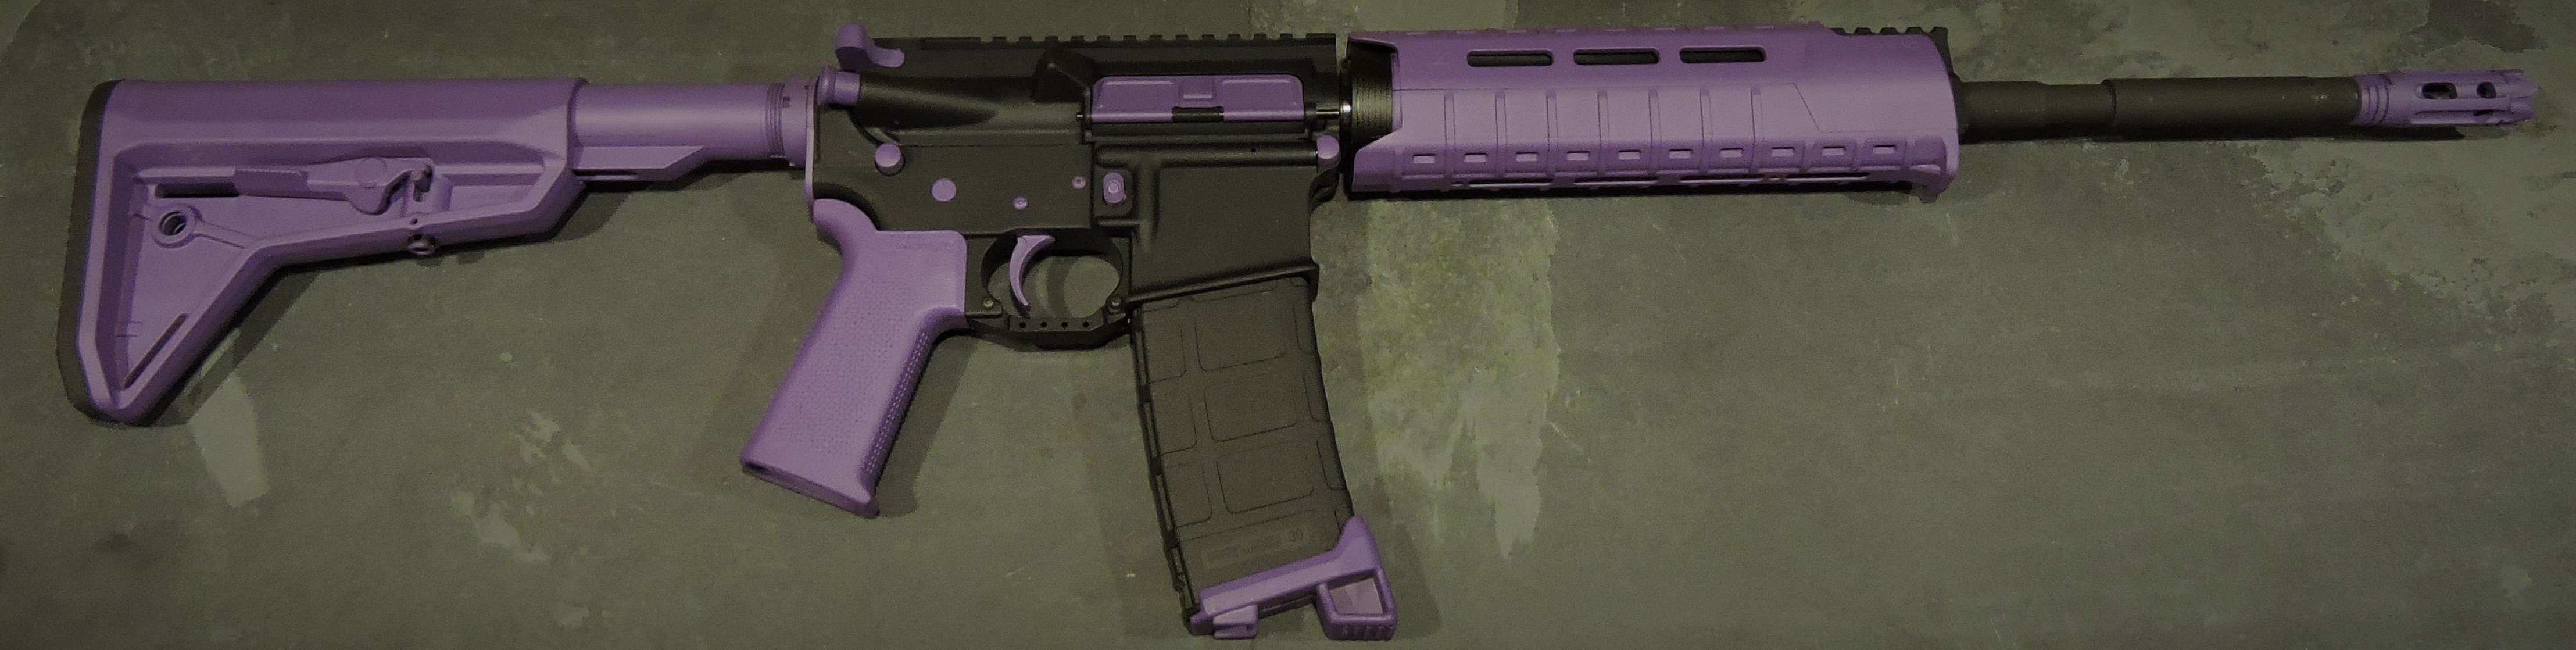 PURPLE AR-15, AR-10 (LR-308) PARTS